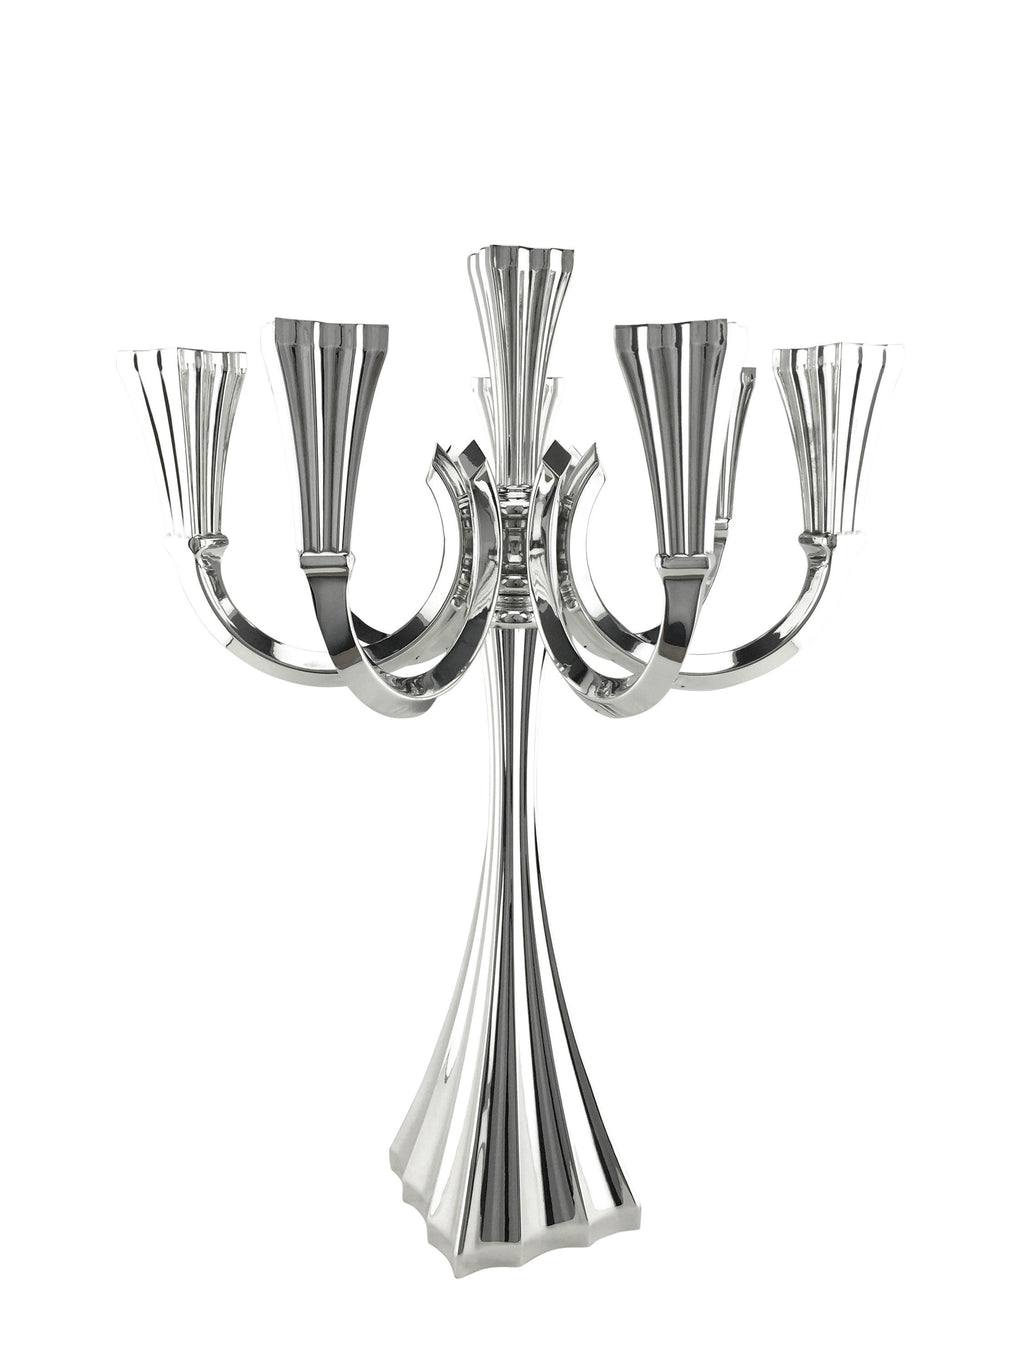 "Galil Smooth 5-Light Sterling 17.5"" Candelabra"